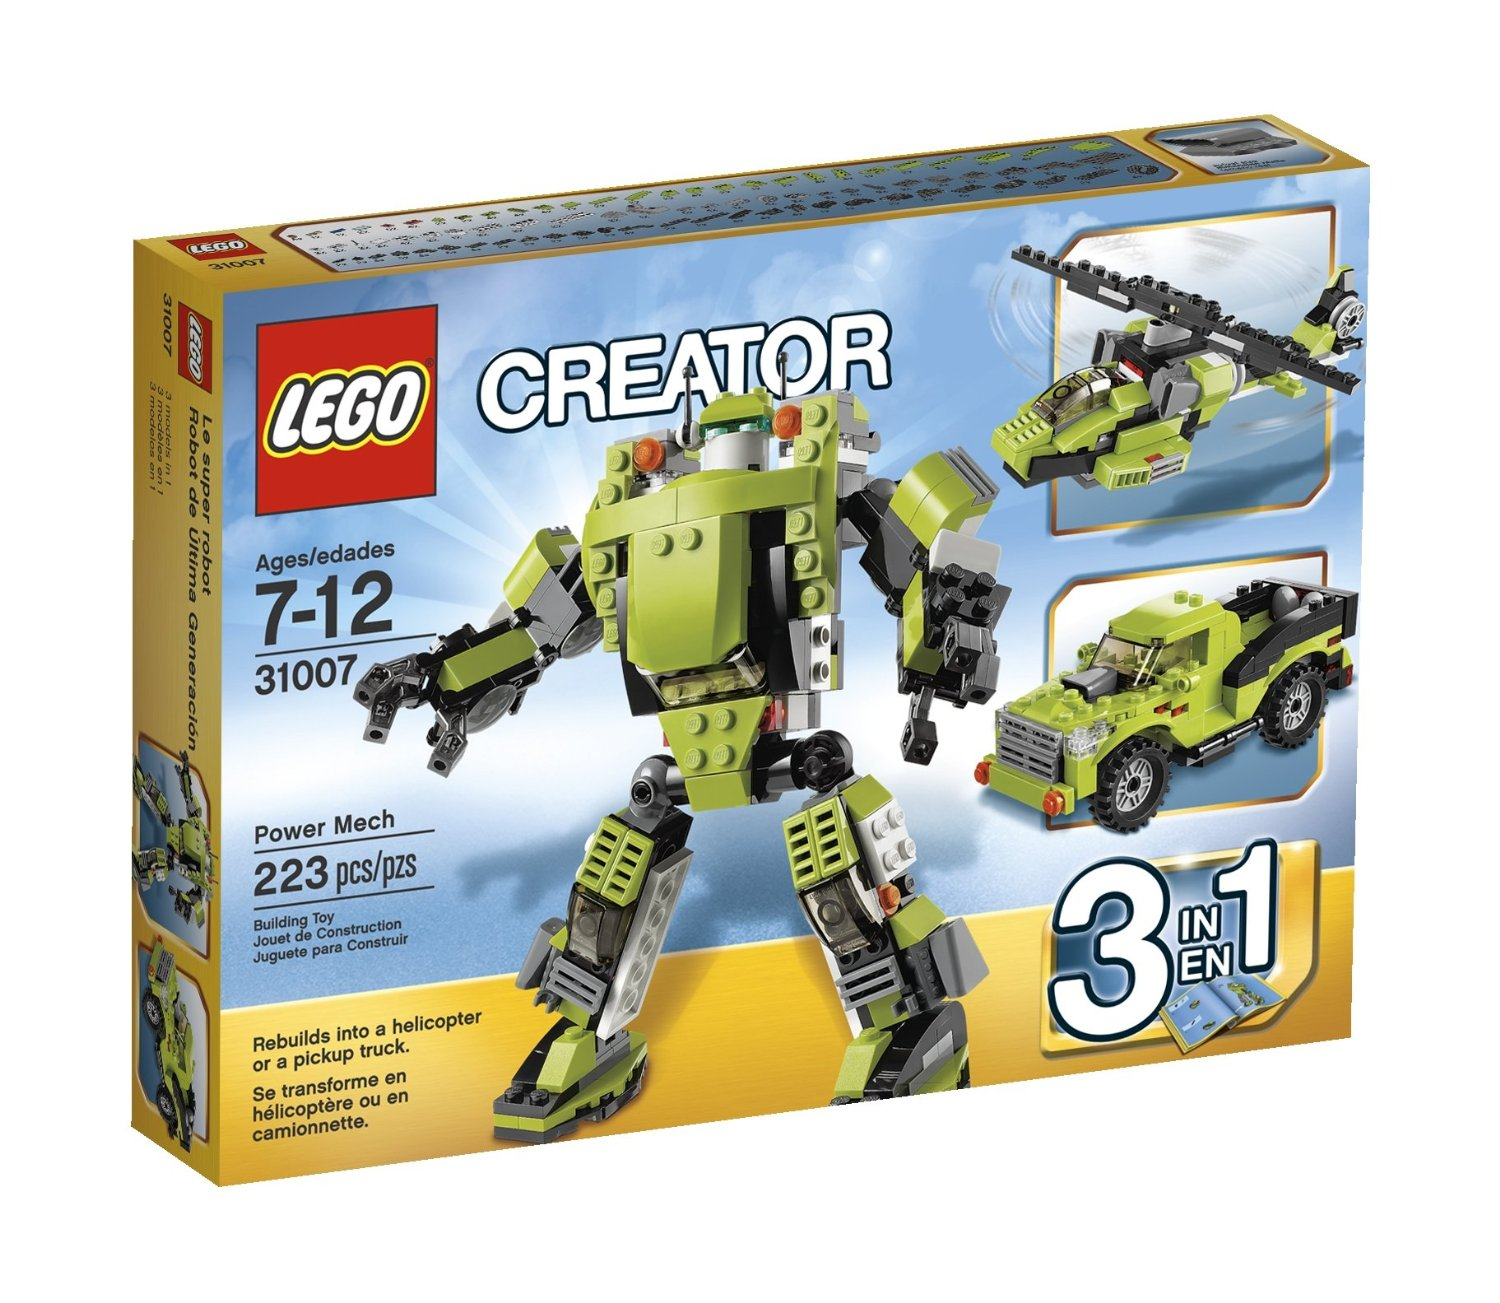 green toys helicopter with Lego Creator Power Mech 31007 on Lego Batman 2014 Man Bat Attack 76011 Winter Set Photos Preview likewise The Incredible Hulk Poster Analysis as well Lego Ninjago 2015 Sets Official Images Part 2 besides Watch together with 350976883631.